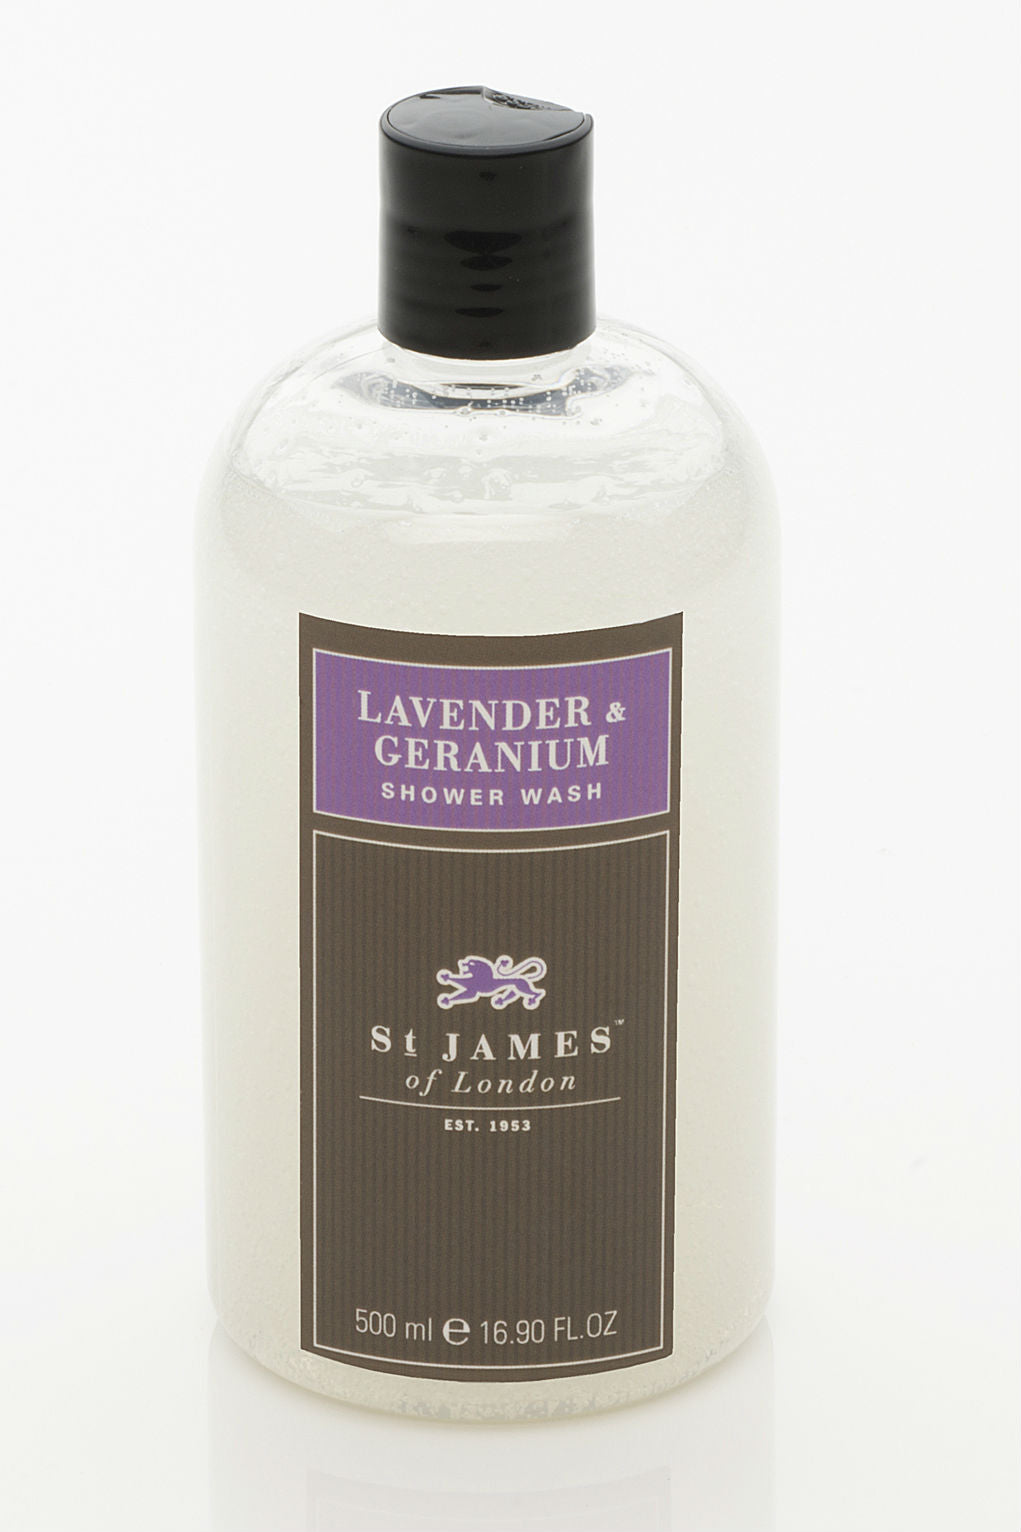 Lavender & Geranium Body Wash 8oz (4435086802998)